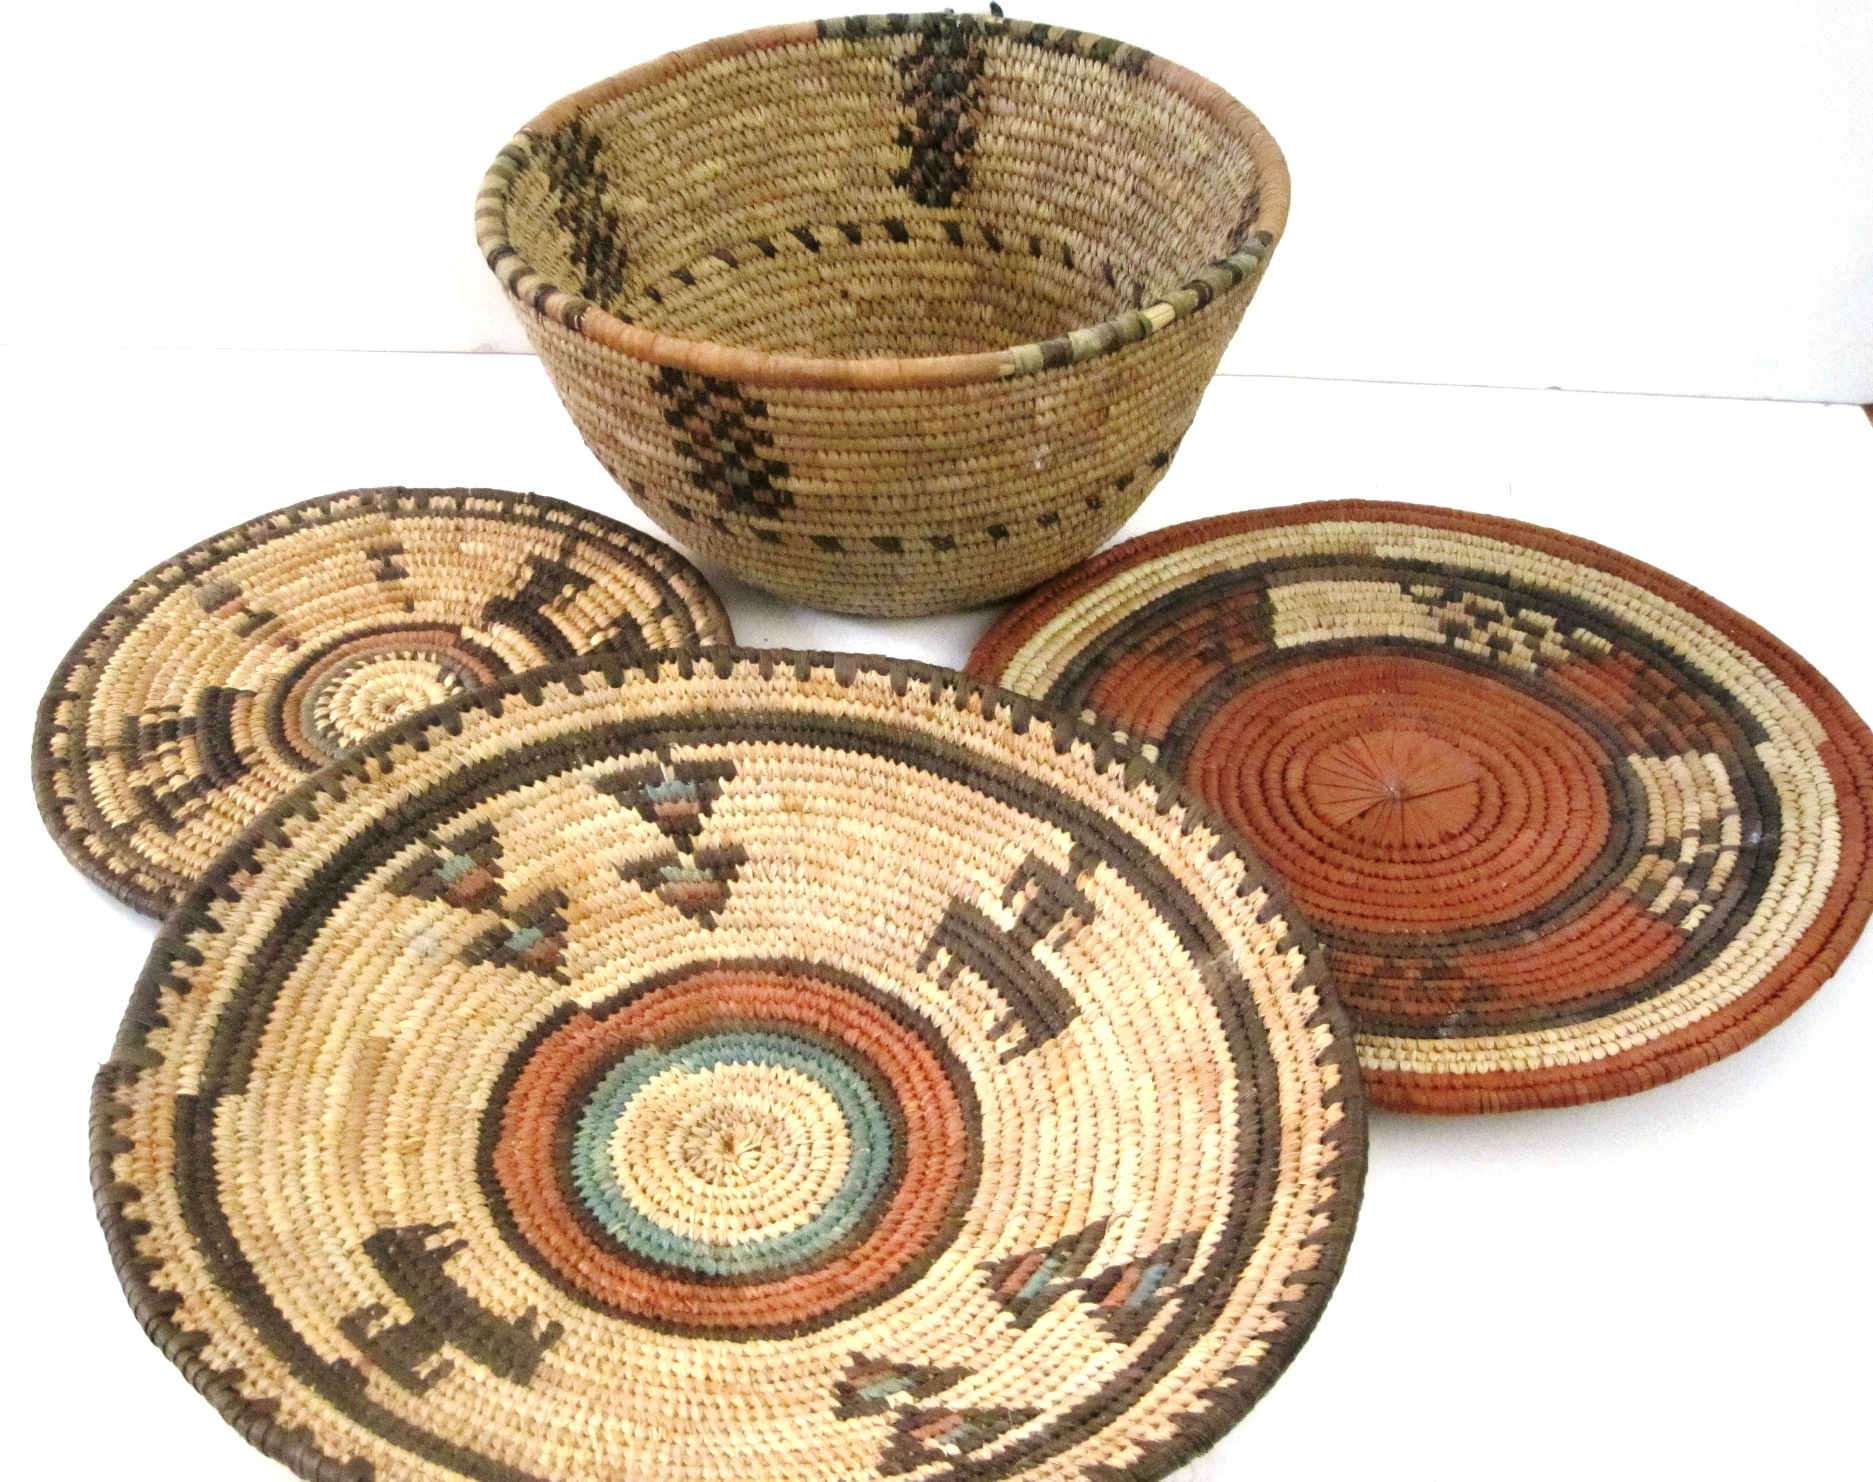 Adari Collection of Ethiopian Baskets